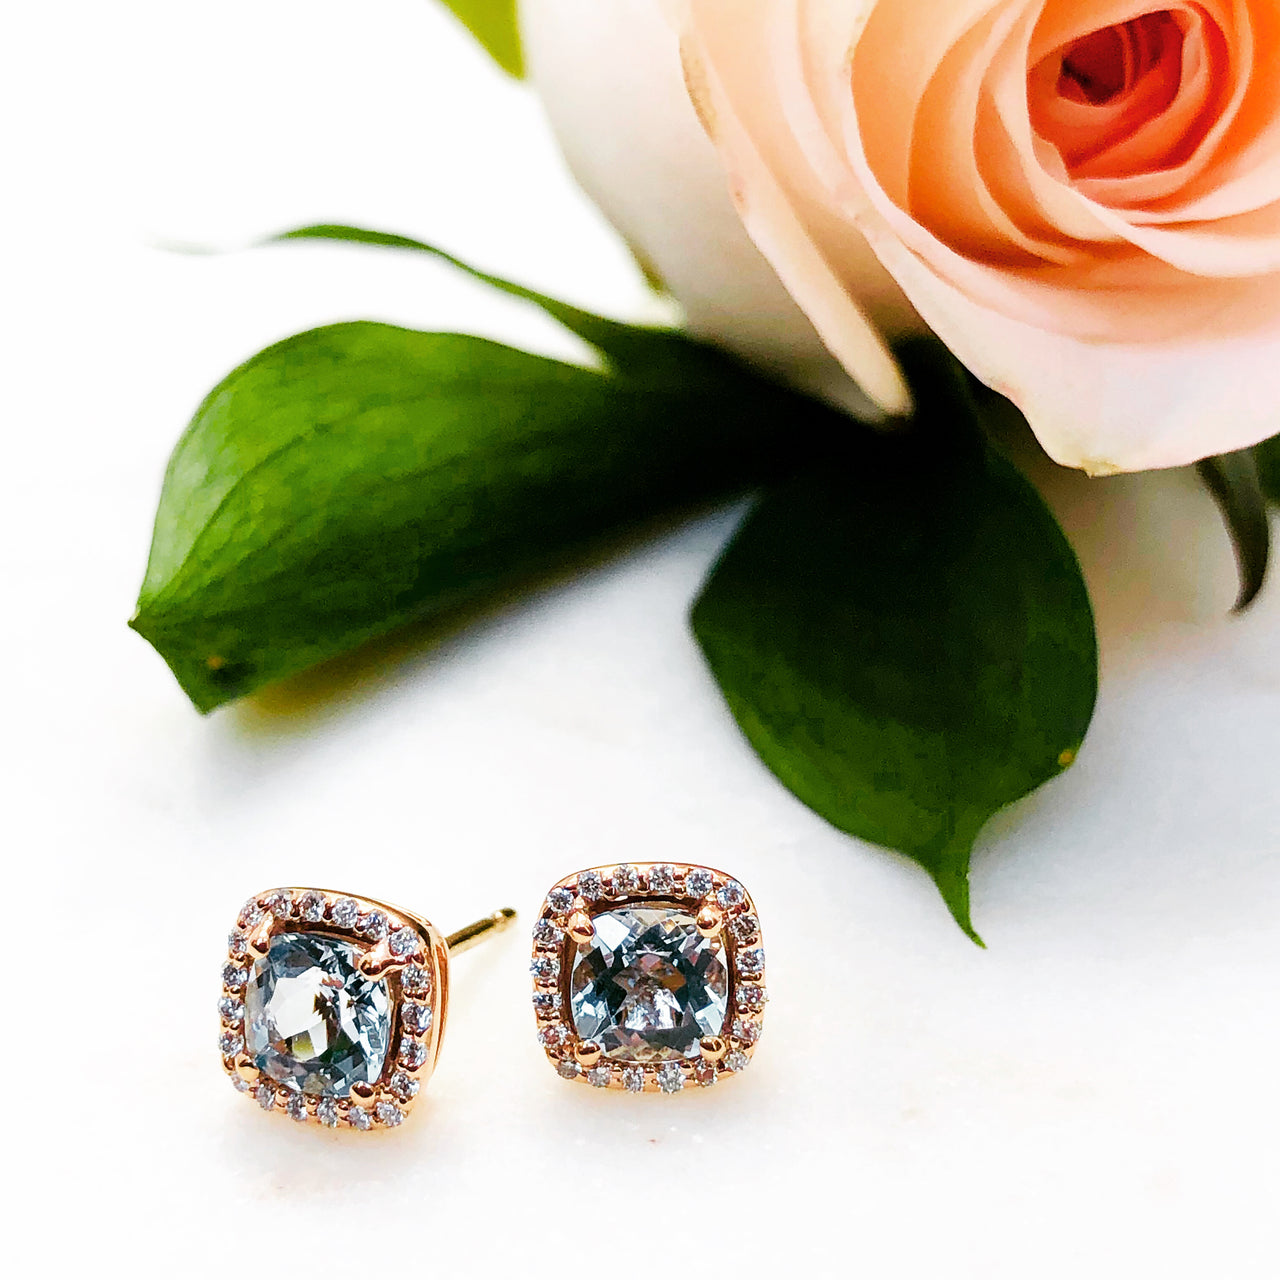 14K Rose Gold Aquamarine and Diamond Earrings.